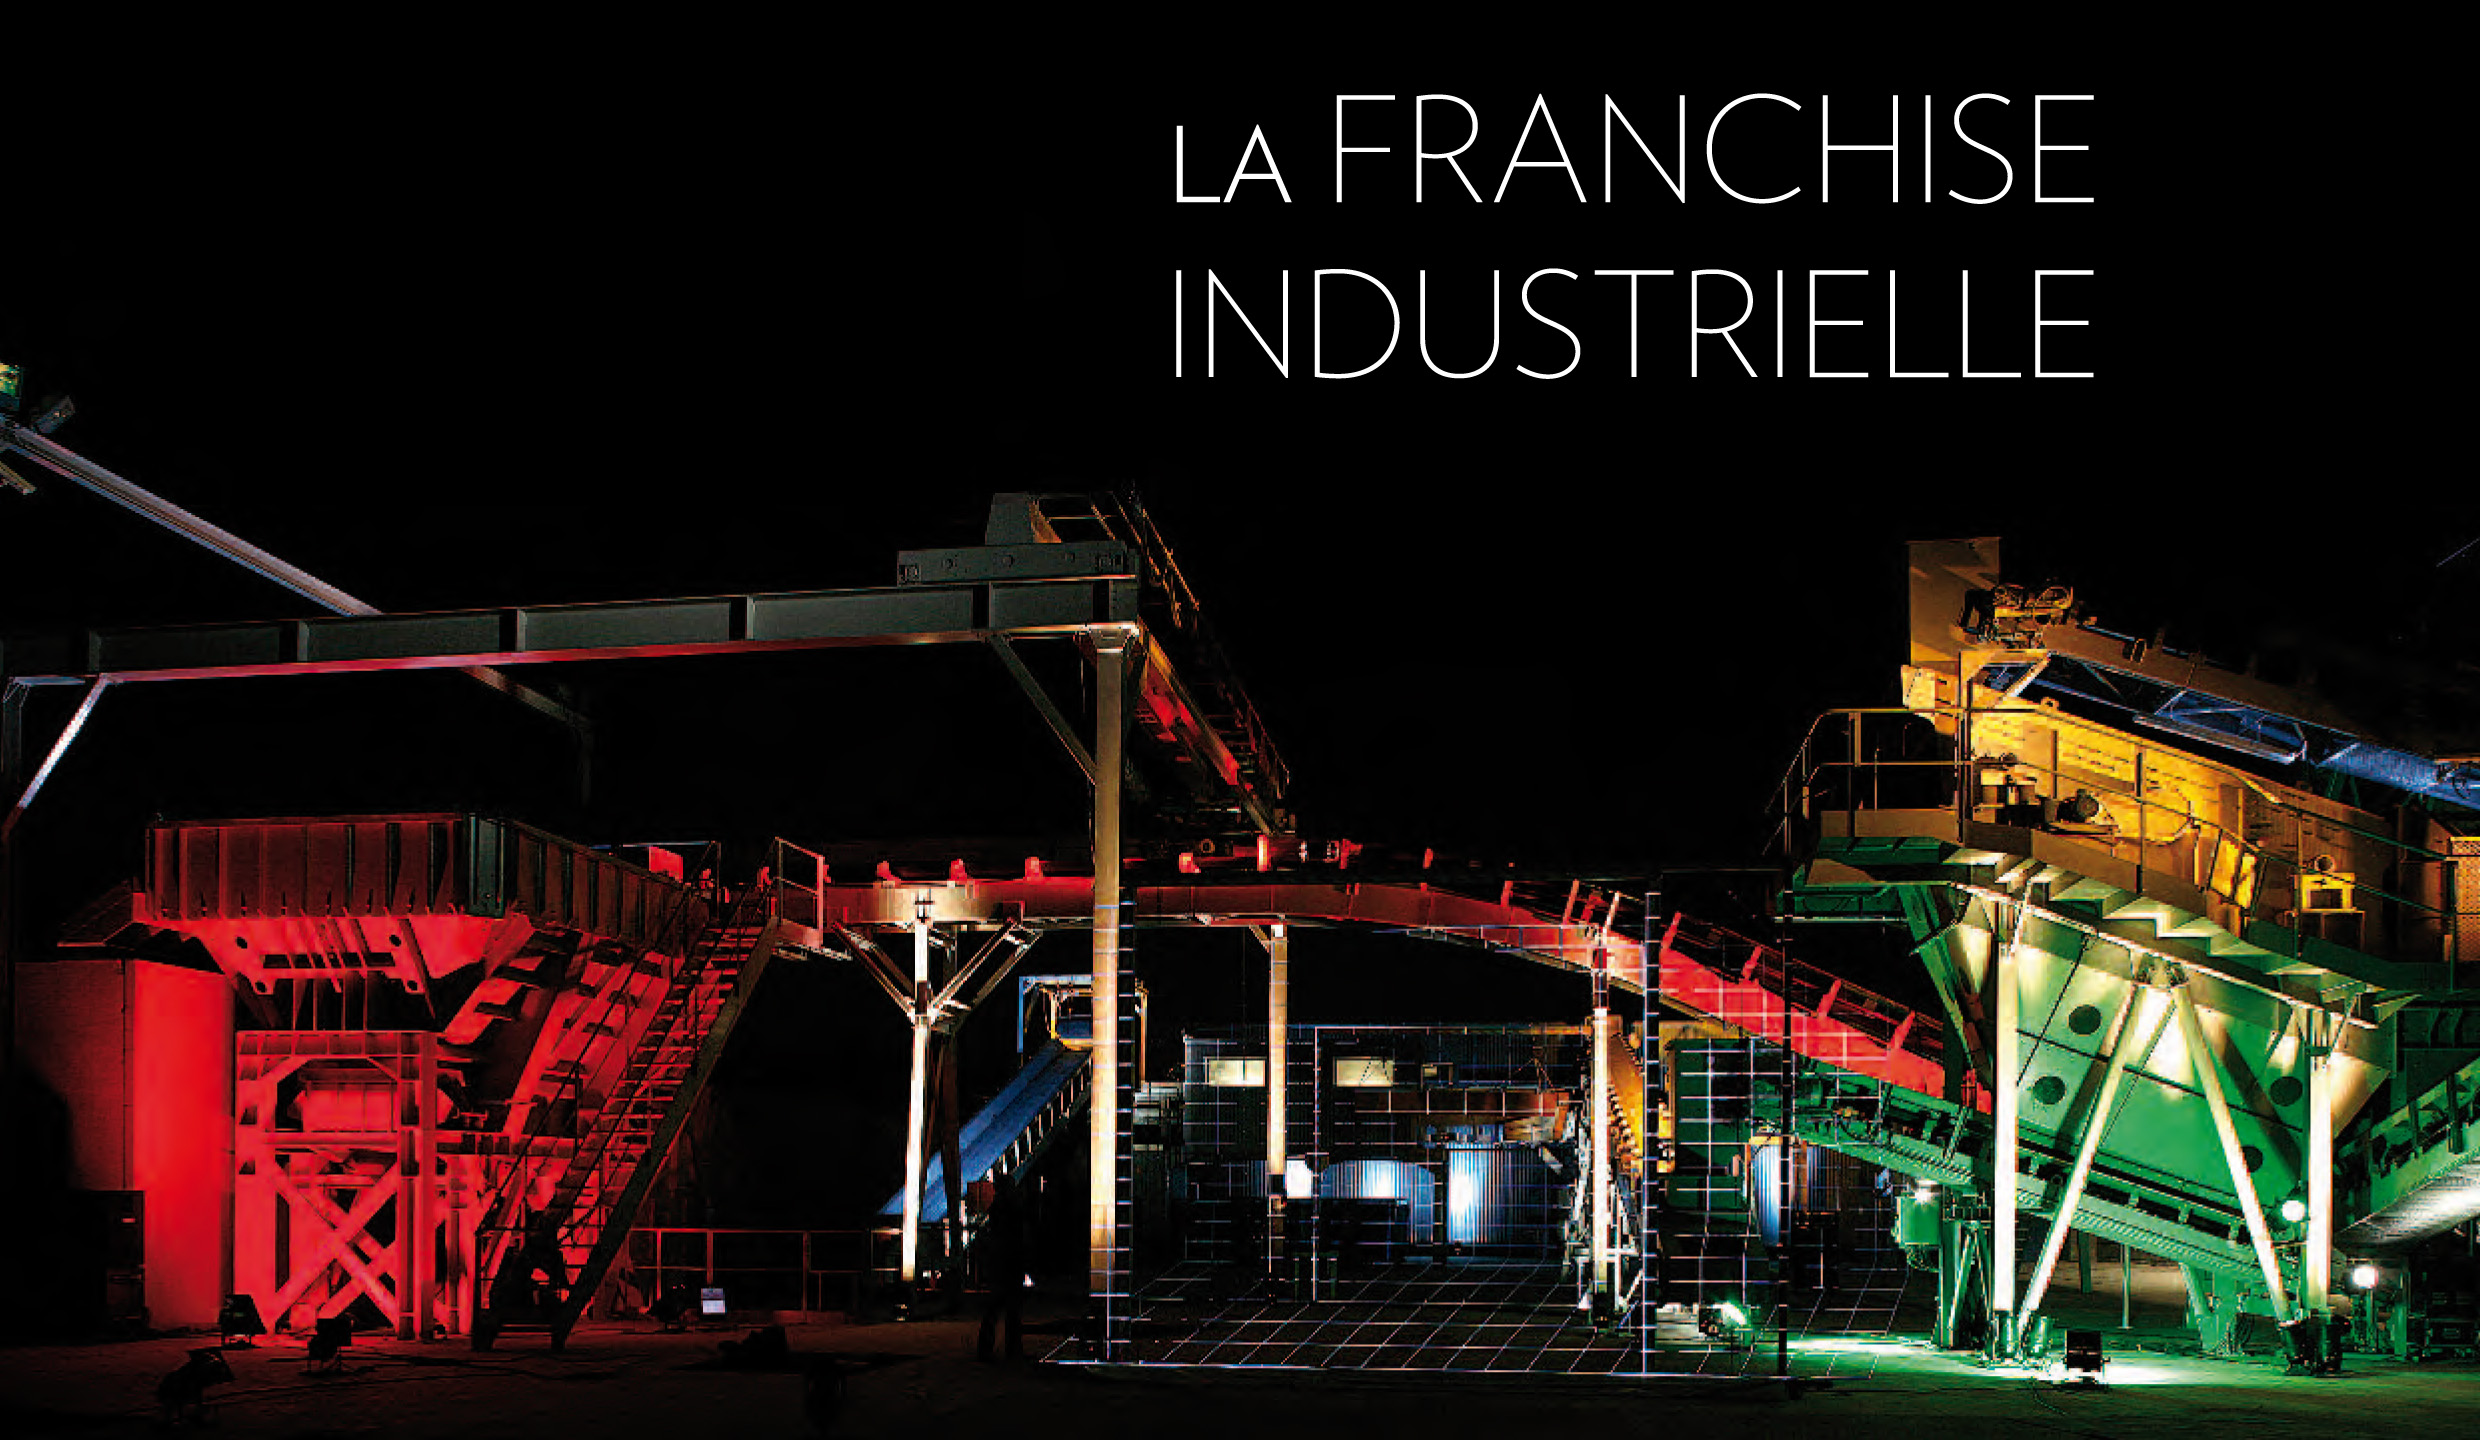 La Franchise Industrelle